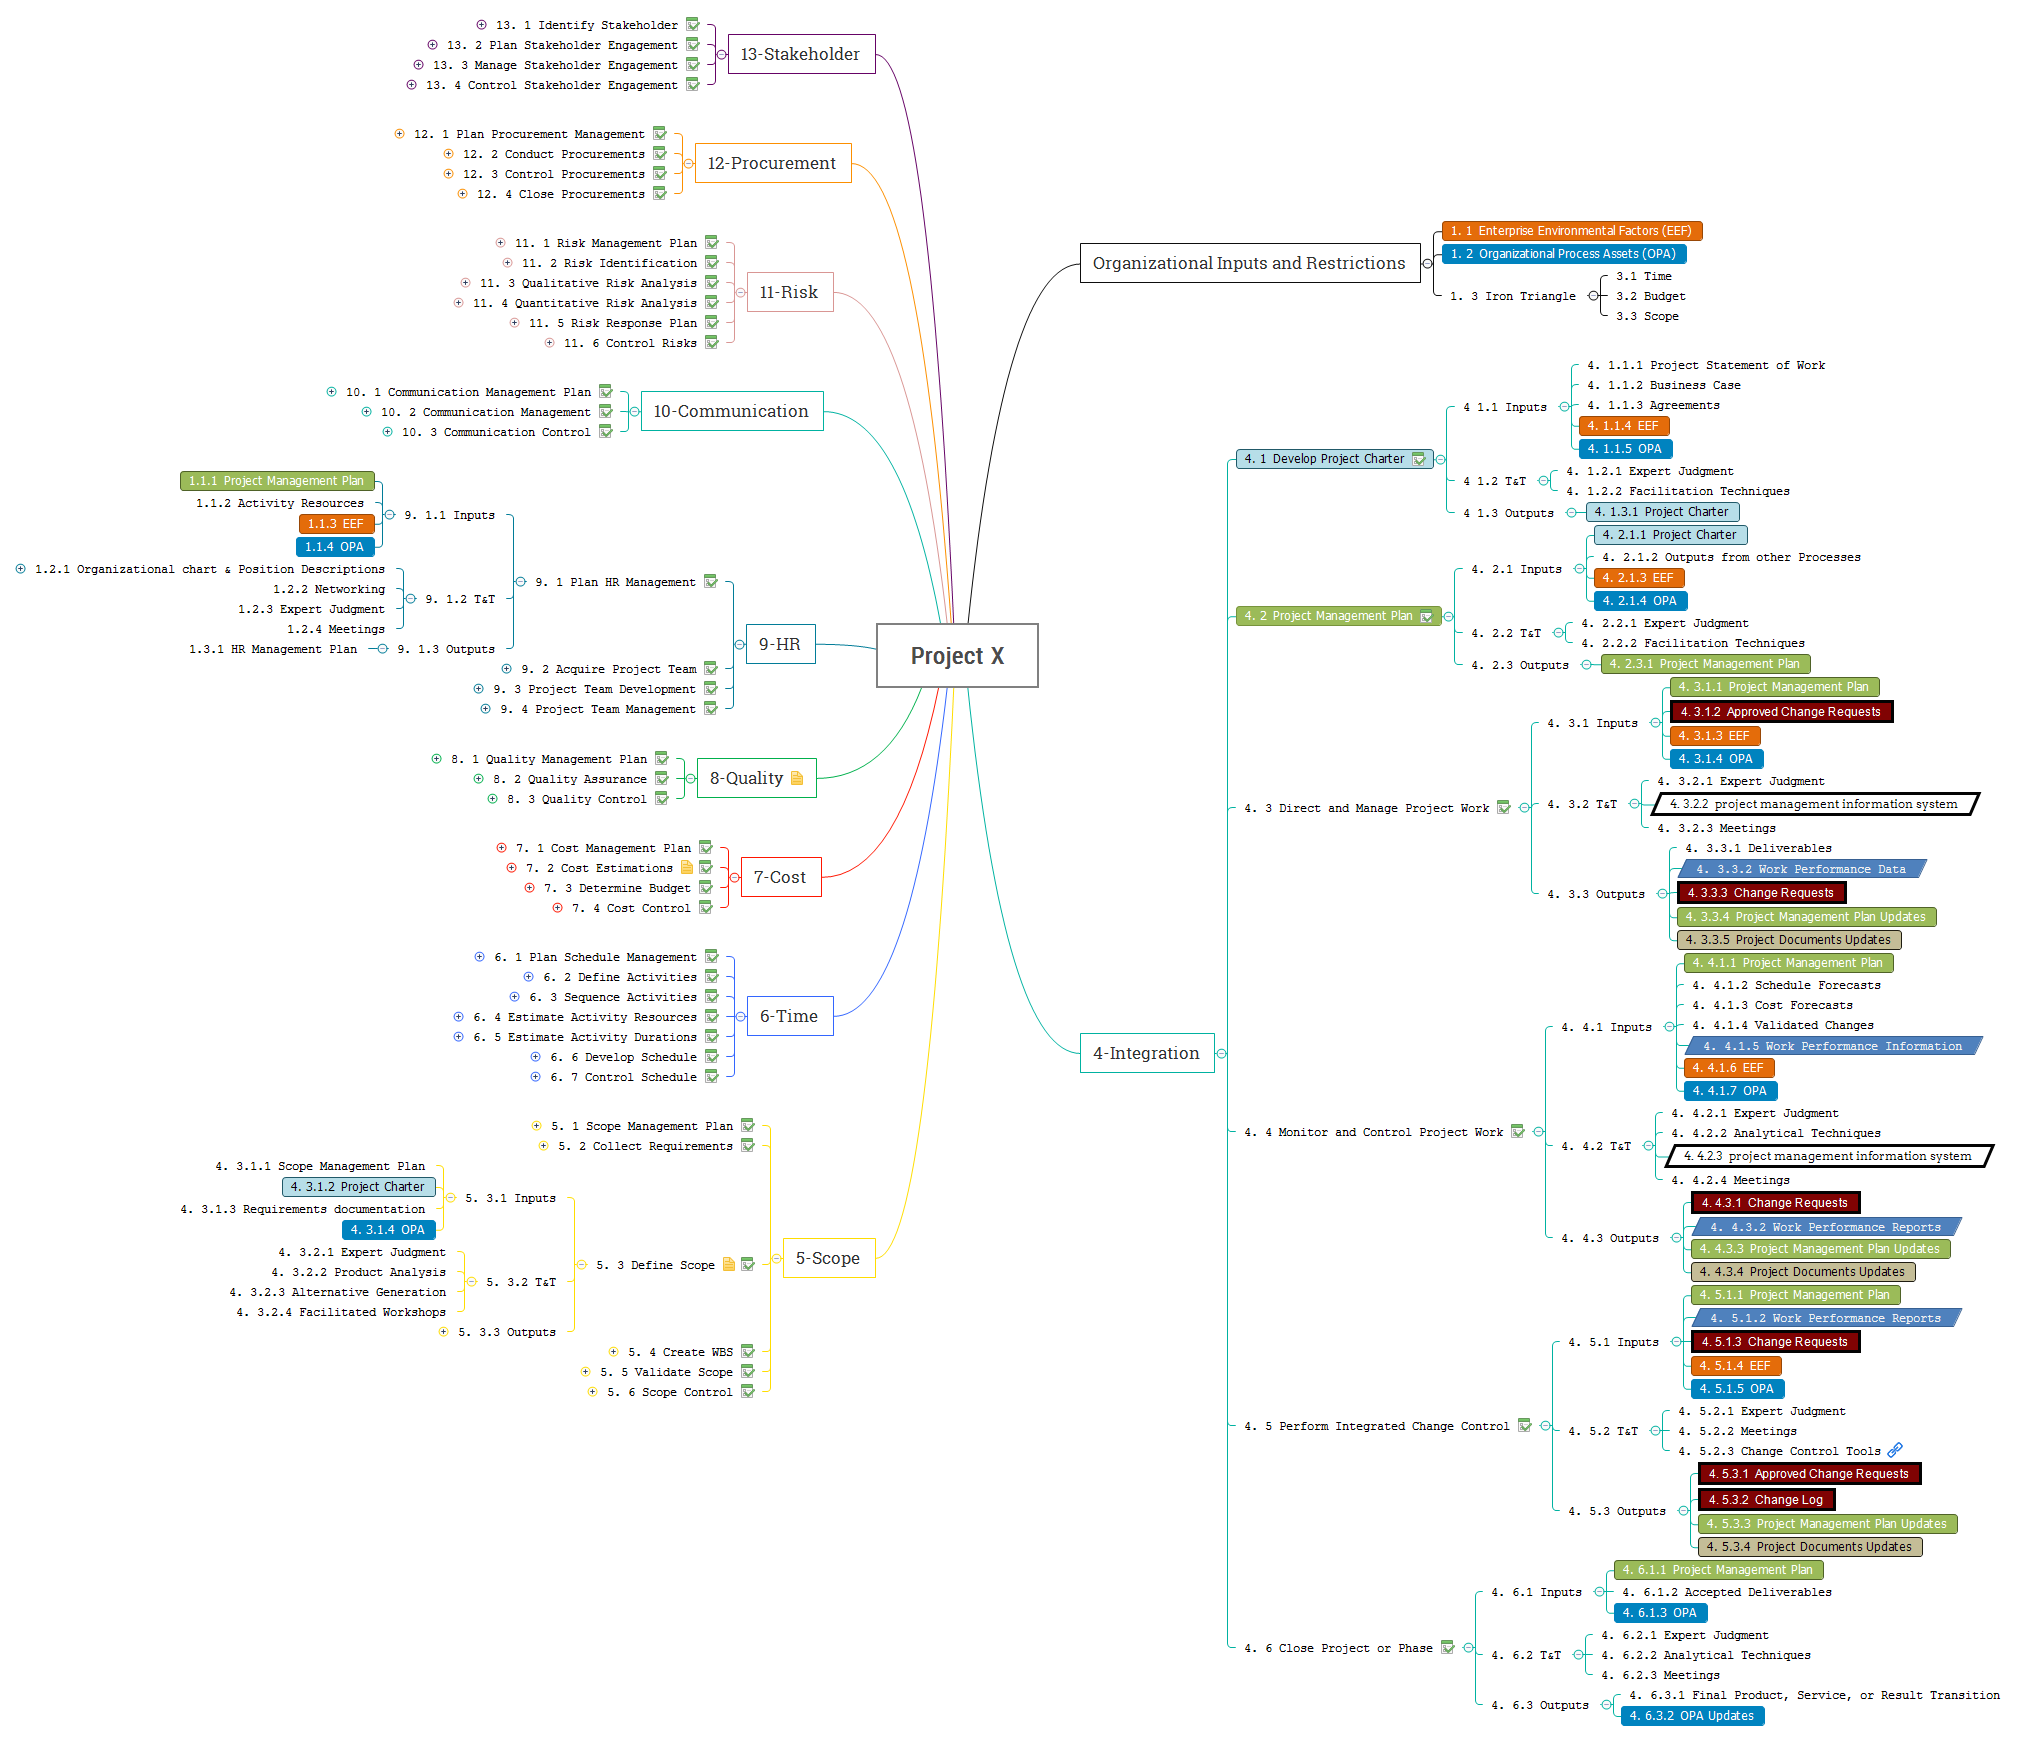 PMBok 5th ed. mind map by domain